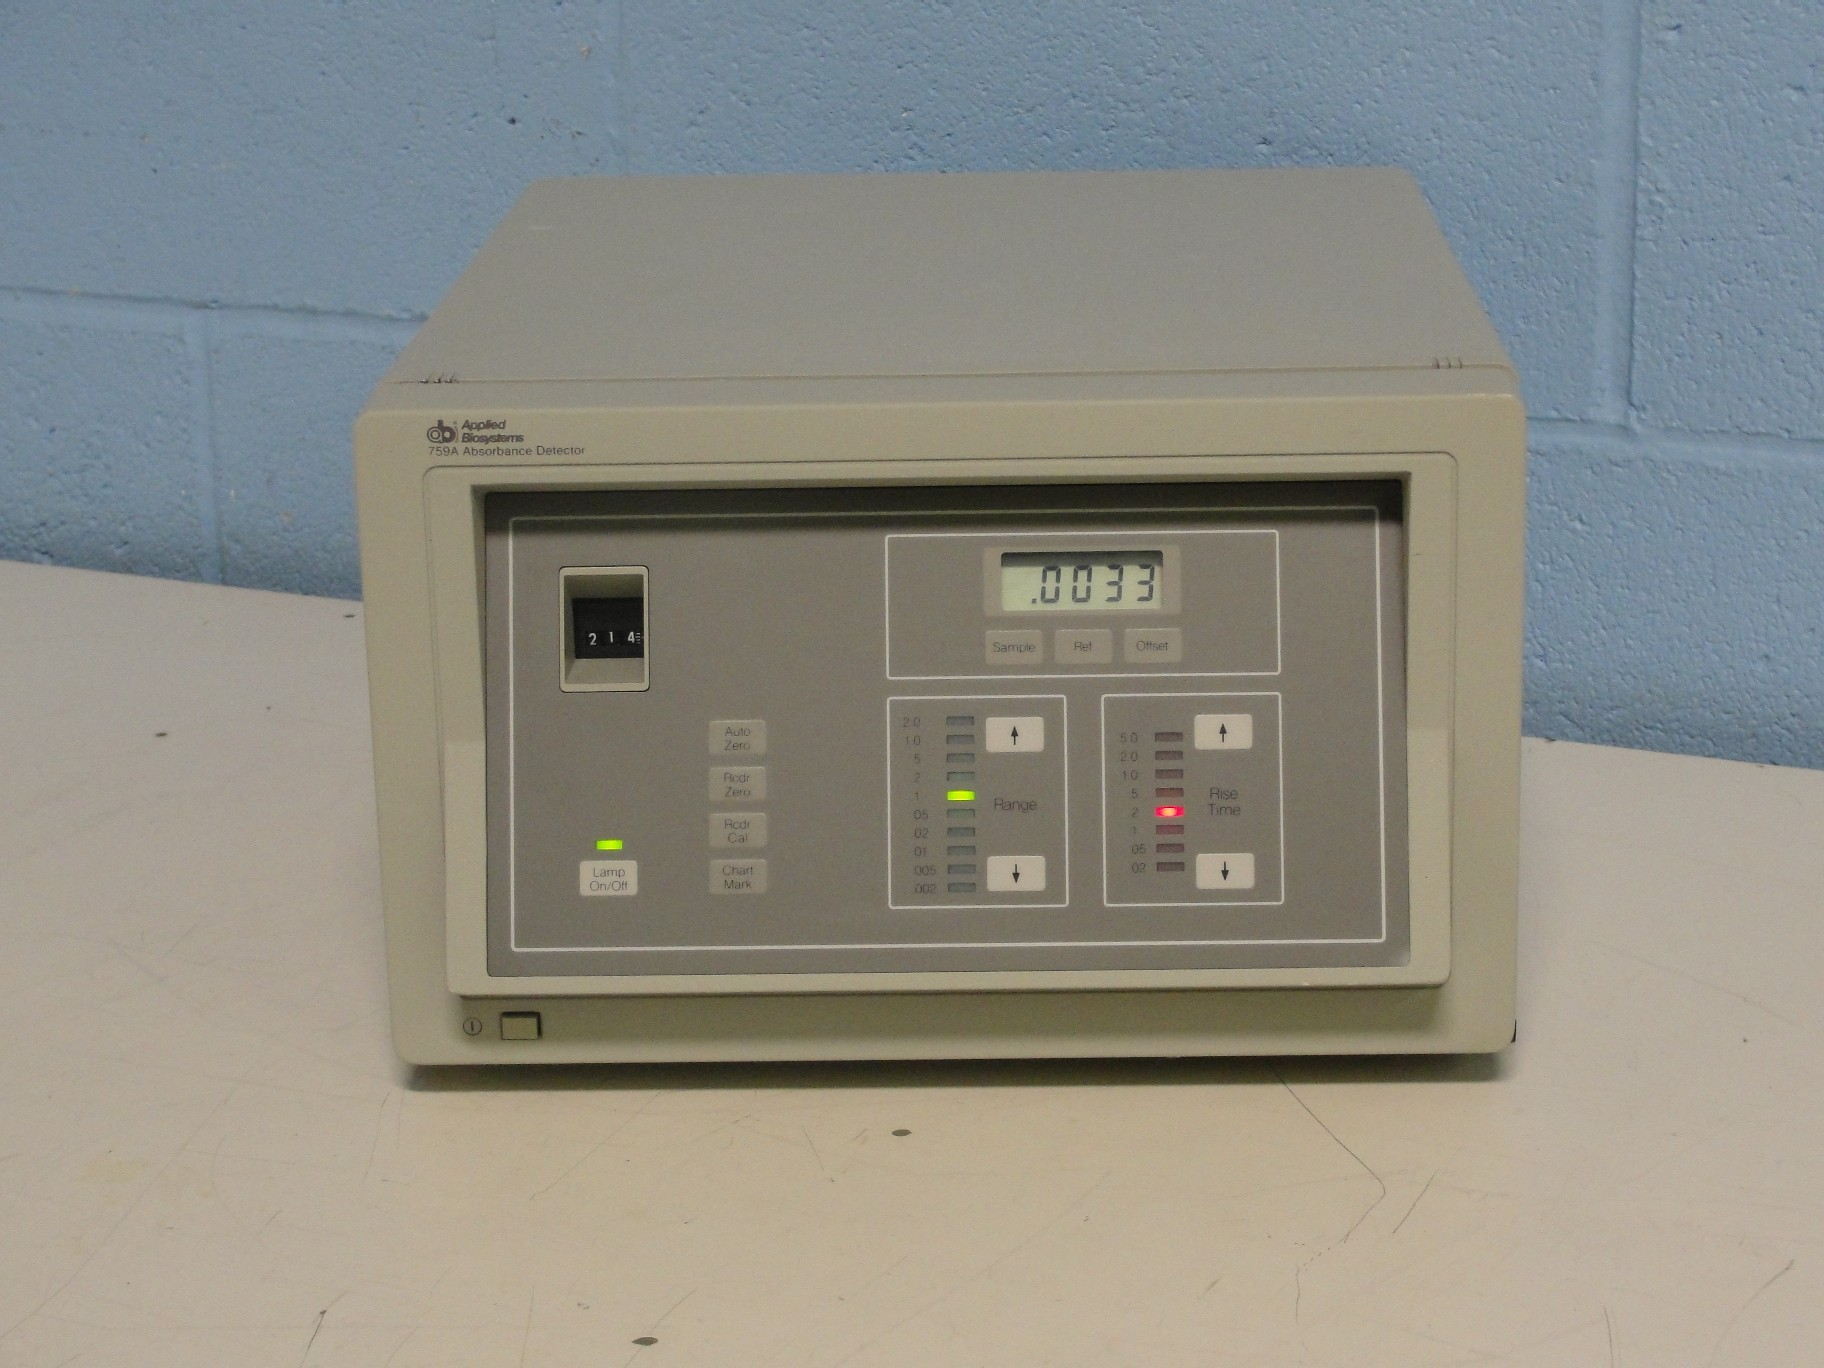 Applied Biosystems 759A Absorbance Detector Image